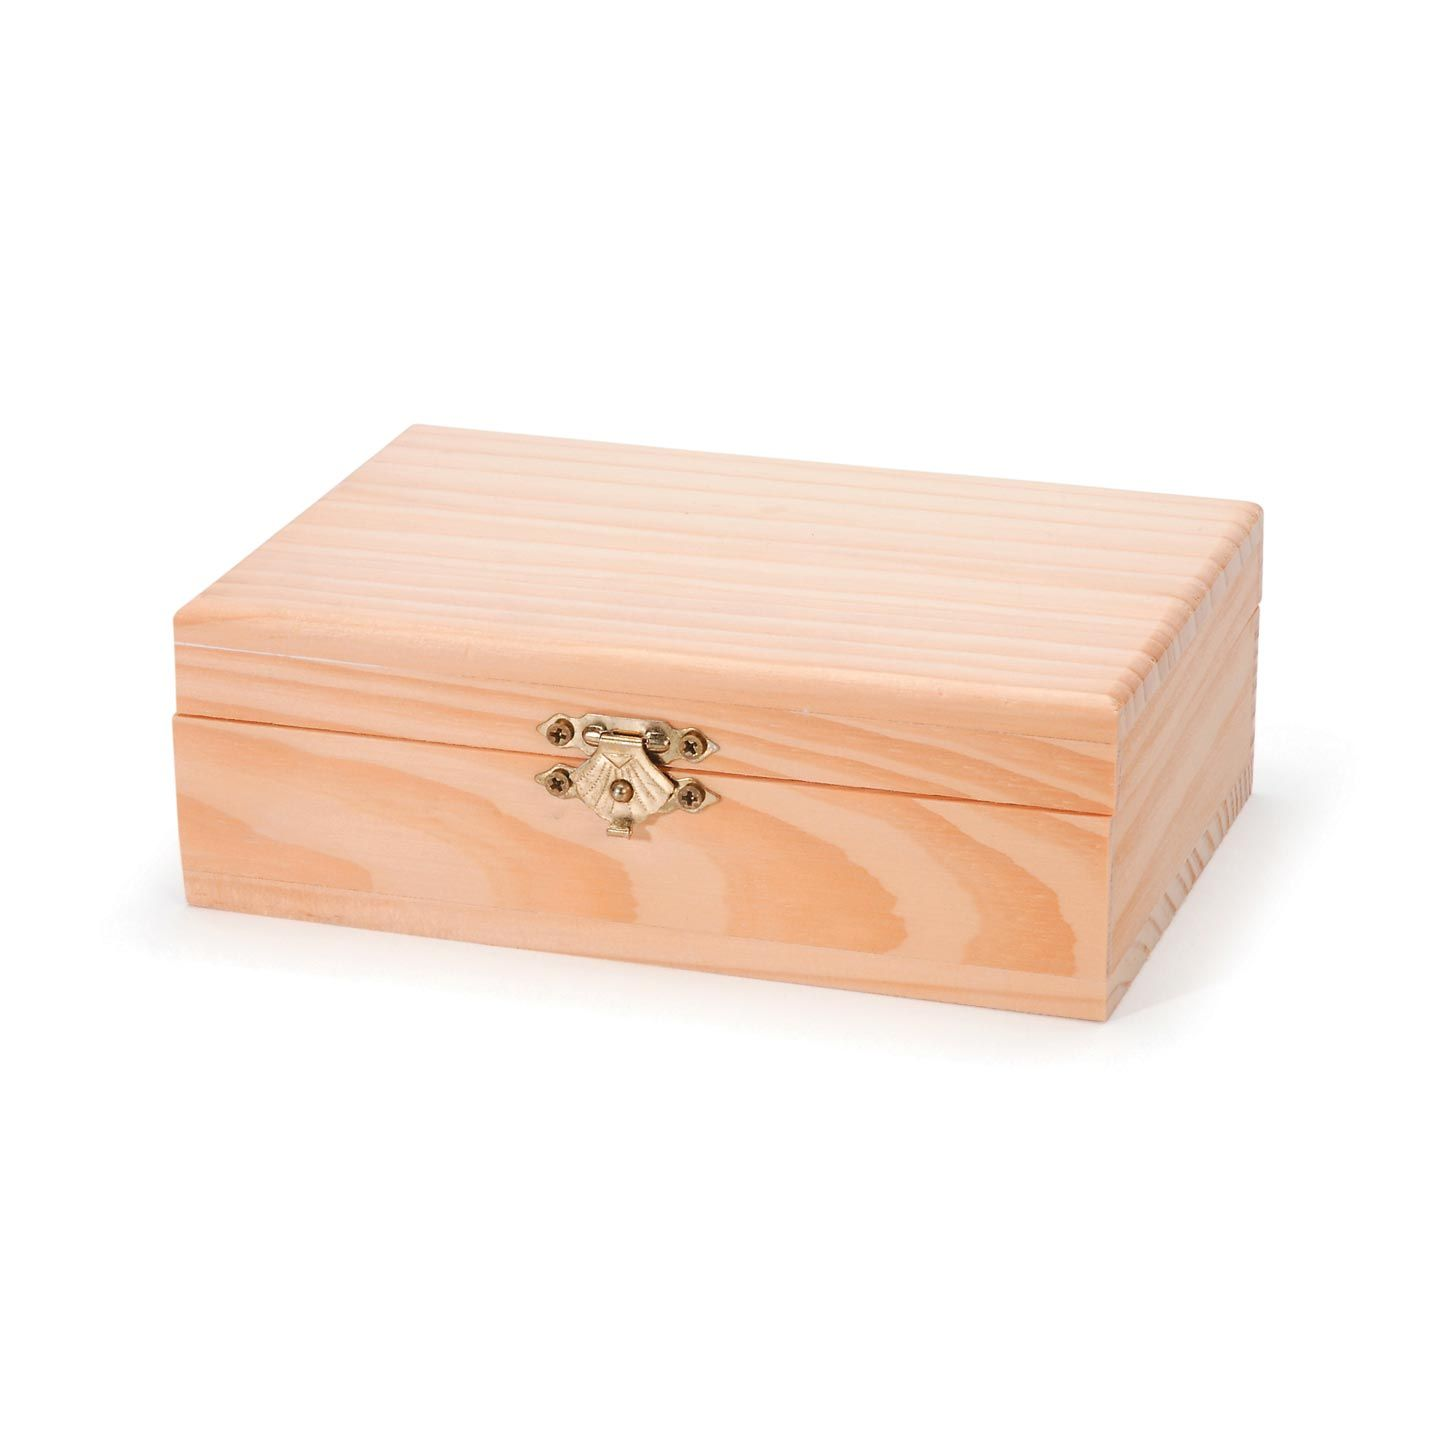 At 6 X 4 X 2 Inches This Hinged Wood Box Is The Perfect Size For Small Mementos Decorate This Unfinis Wood Boxes Unfinished Wood Boxes Unfinished Wood Crafts